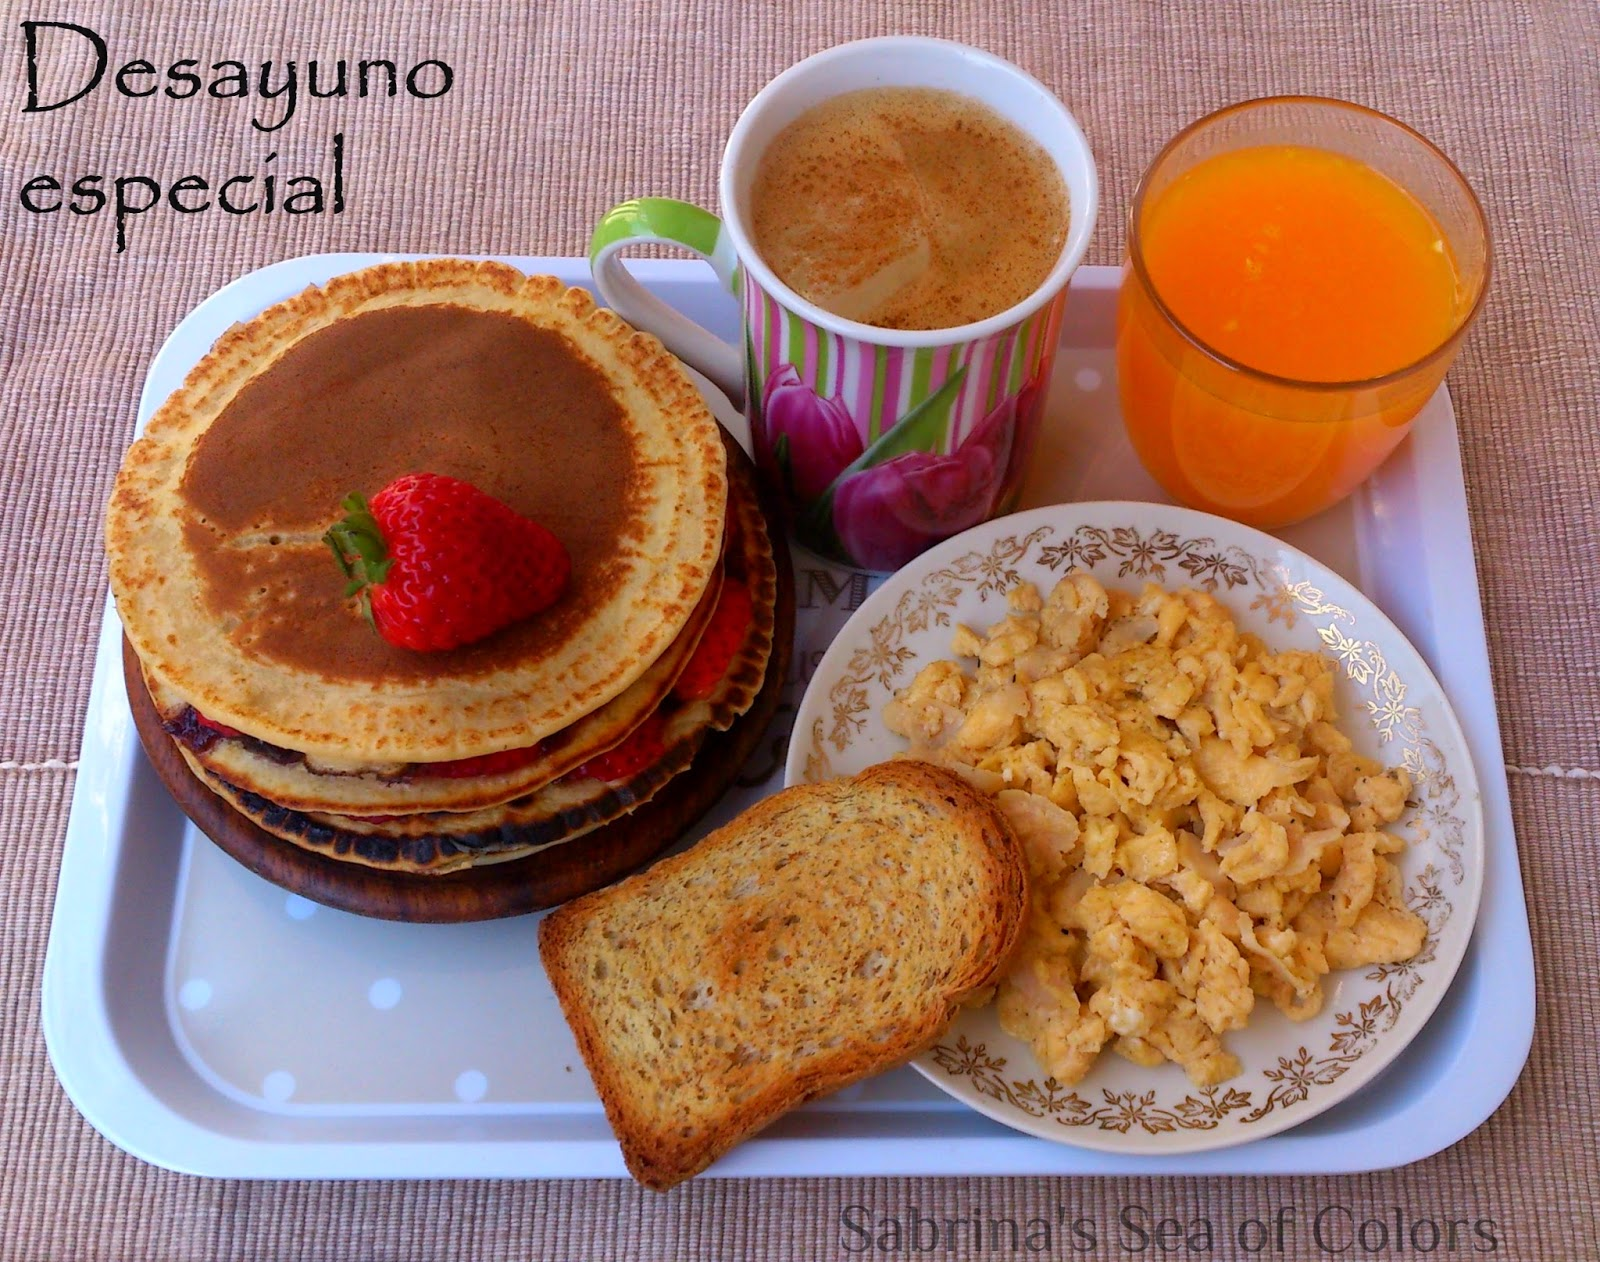 Desayuno para ocasiones especiales sabrina s sea of colors for Platos para ocasiones especiales